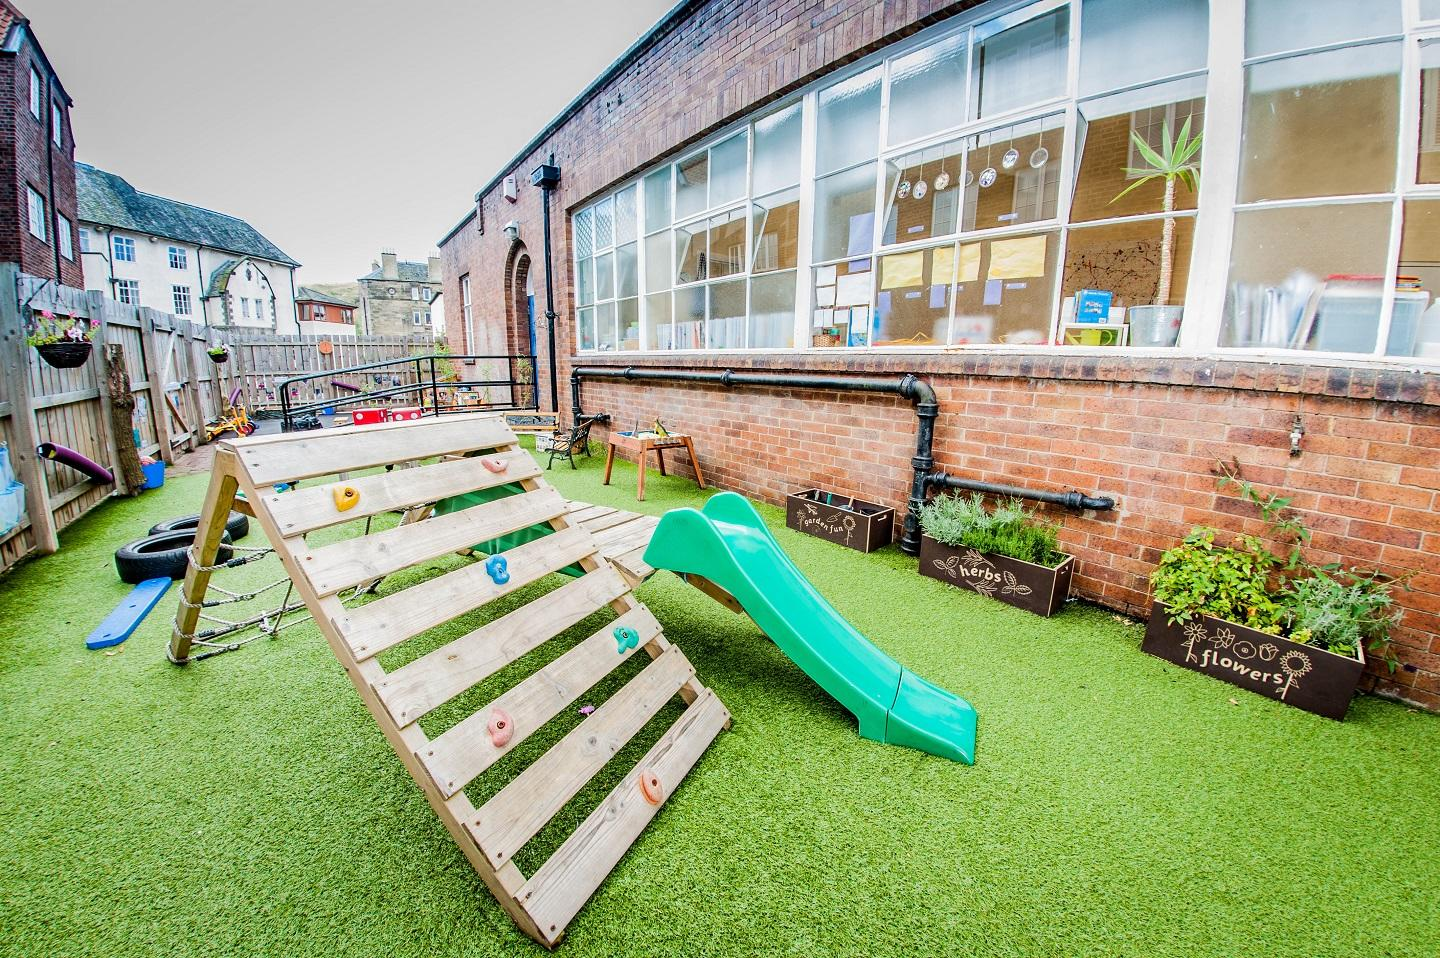 Bright Horizons Elsie Inglis Early Learning And Childcare